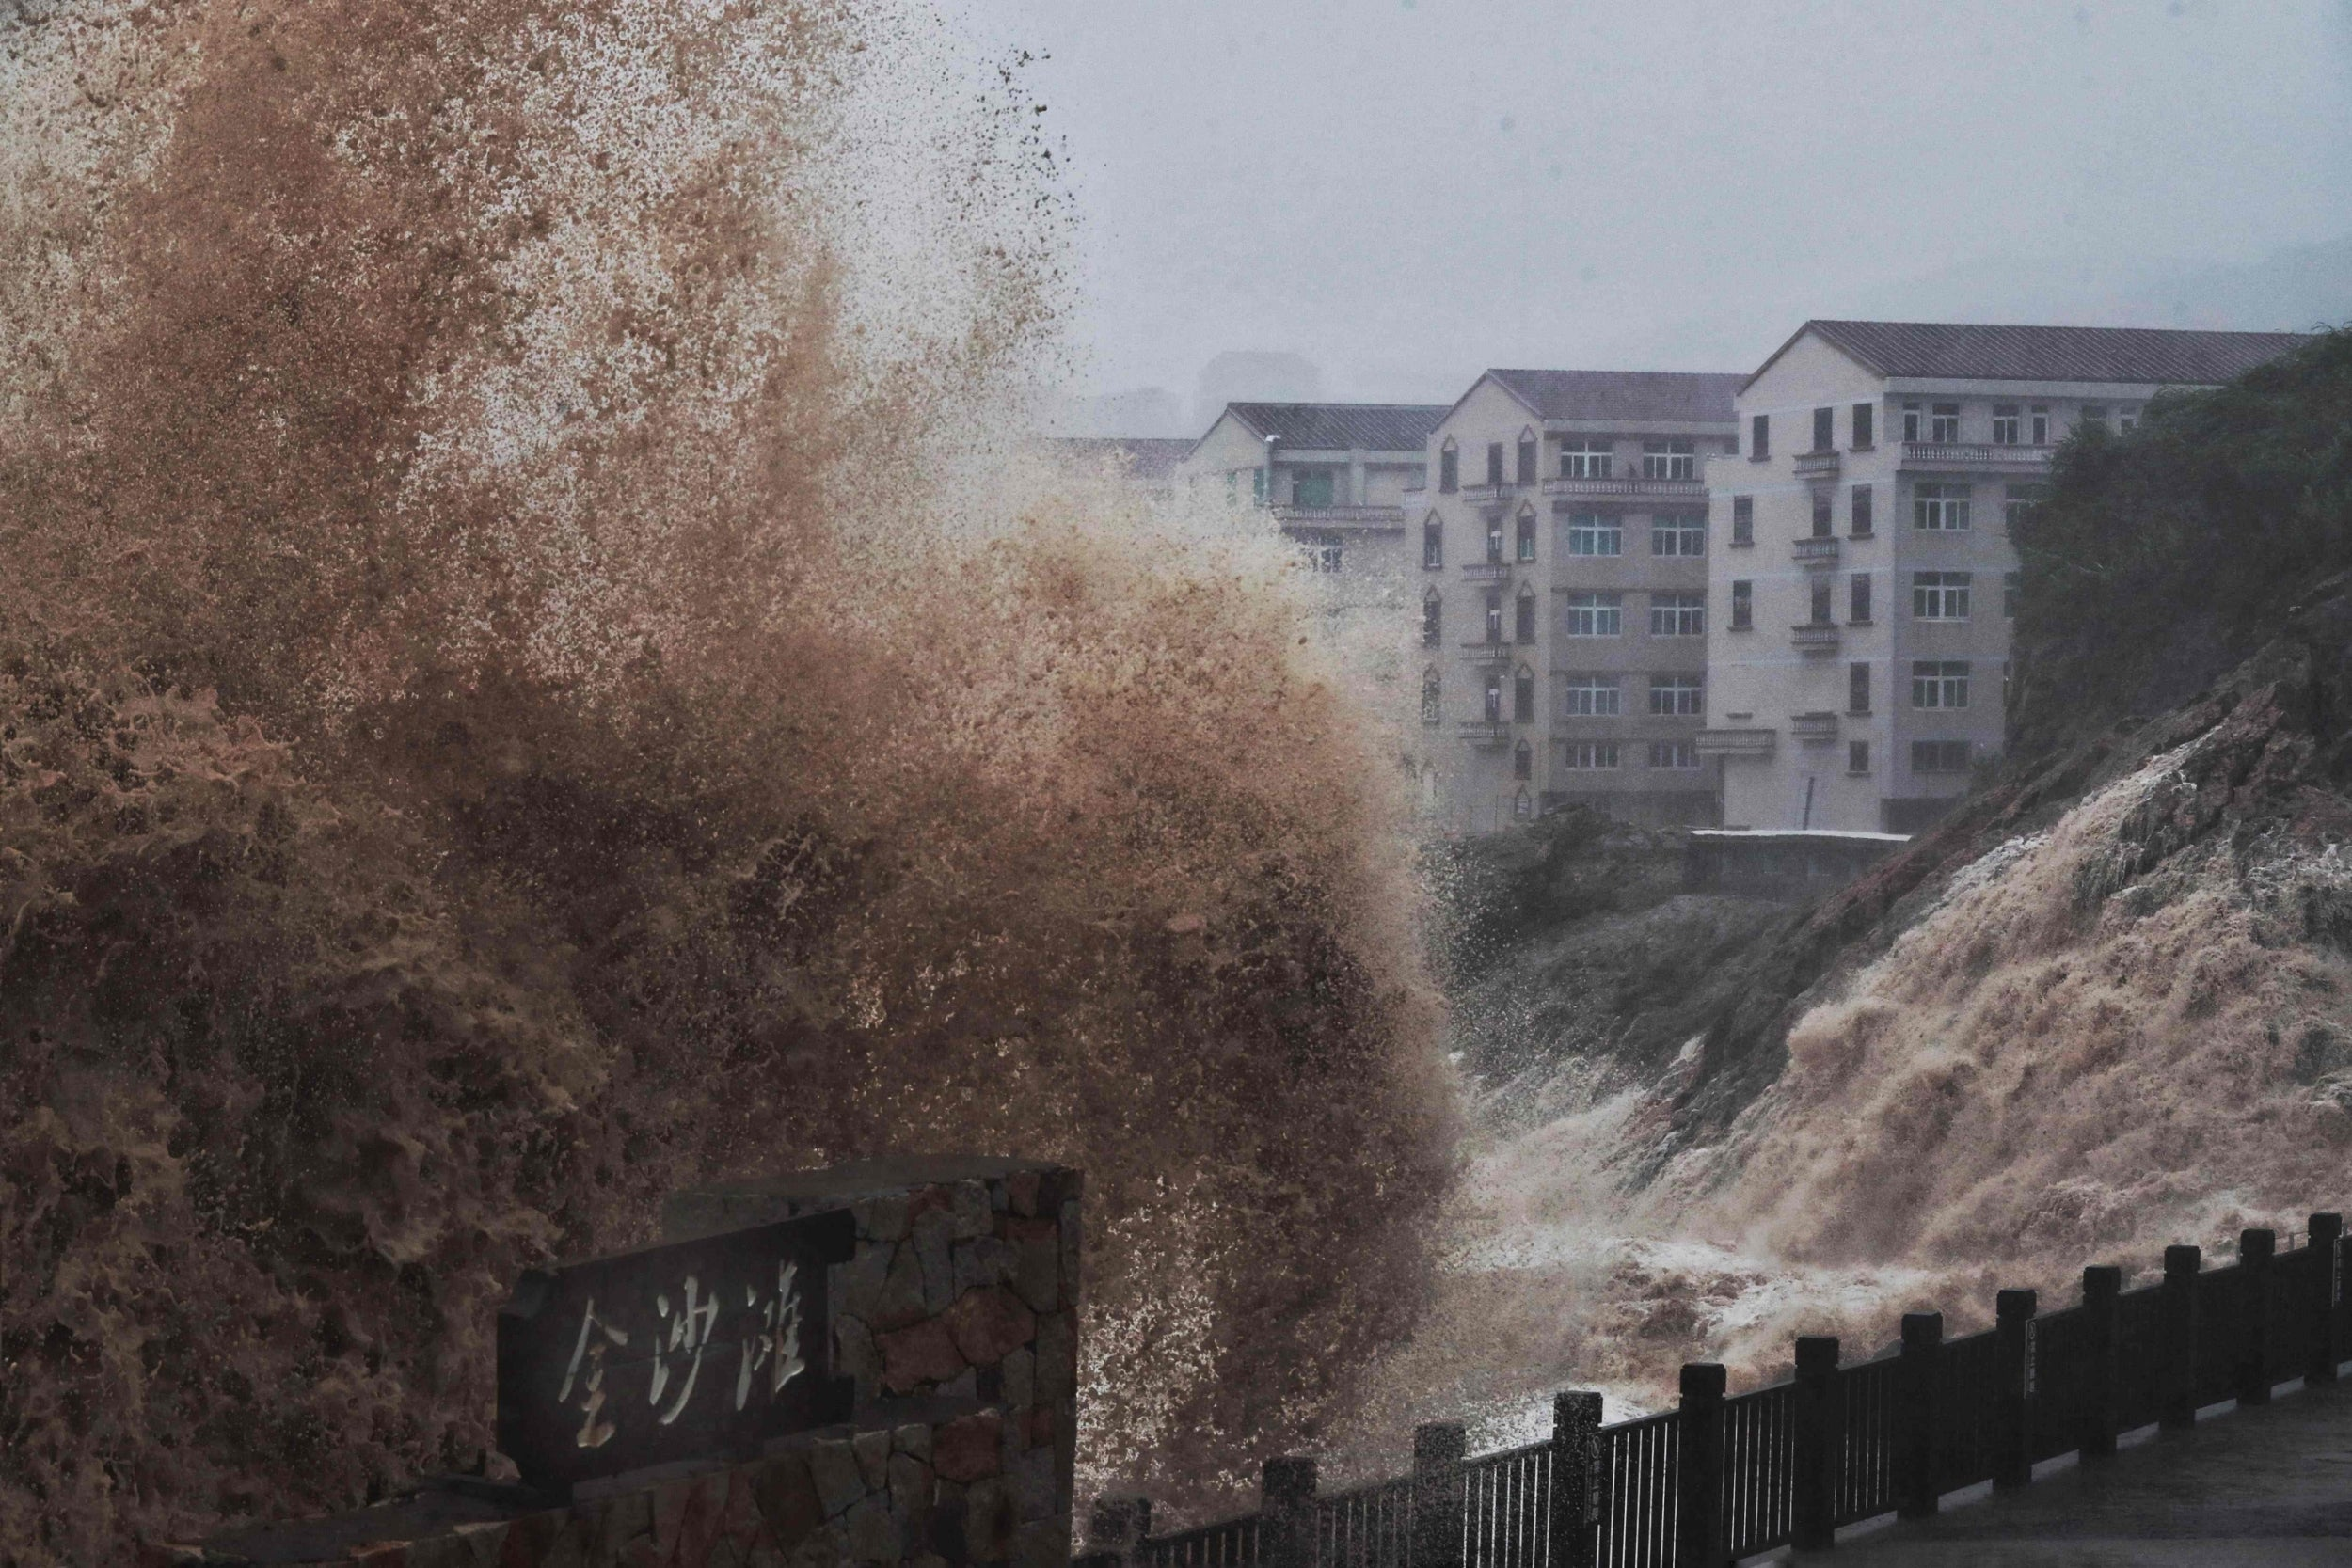 Typhoon Lekima: Dozens dead and 18 missing as 130mph winds ravage eastern China